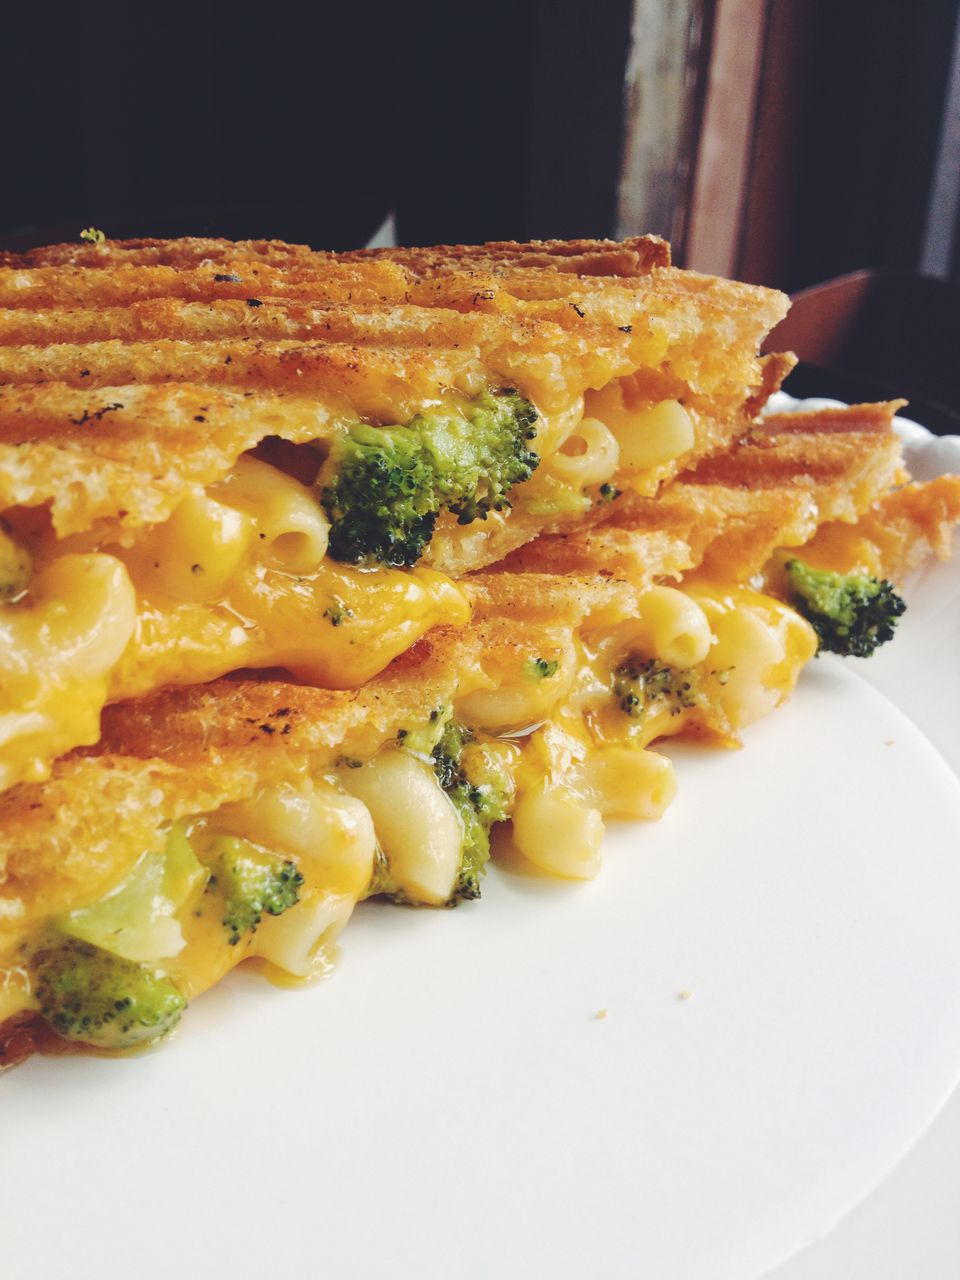 Grilled Macaroni And Cheese Sandwich with Broccoli